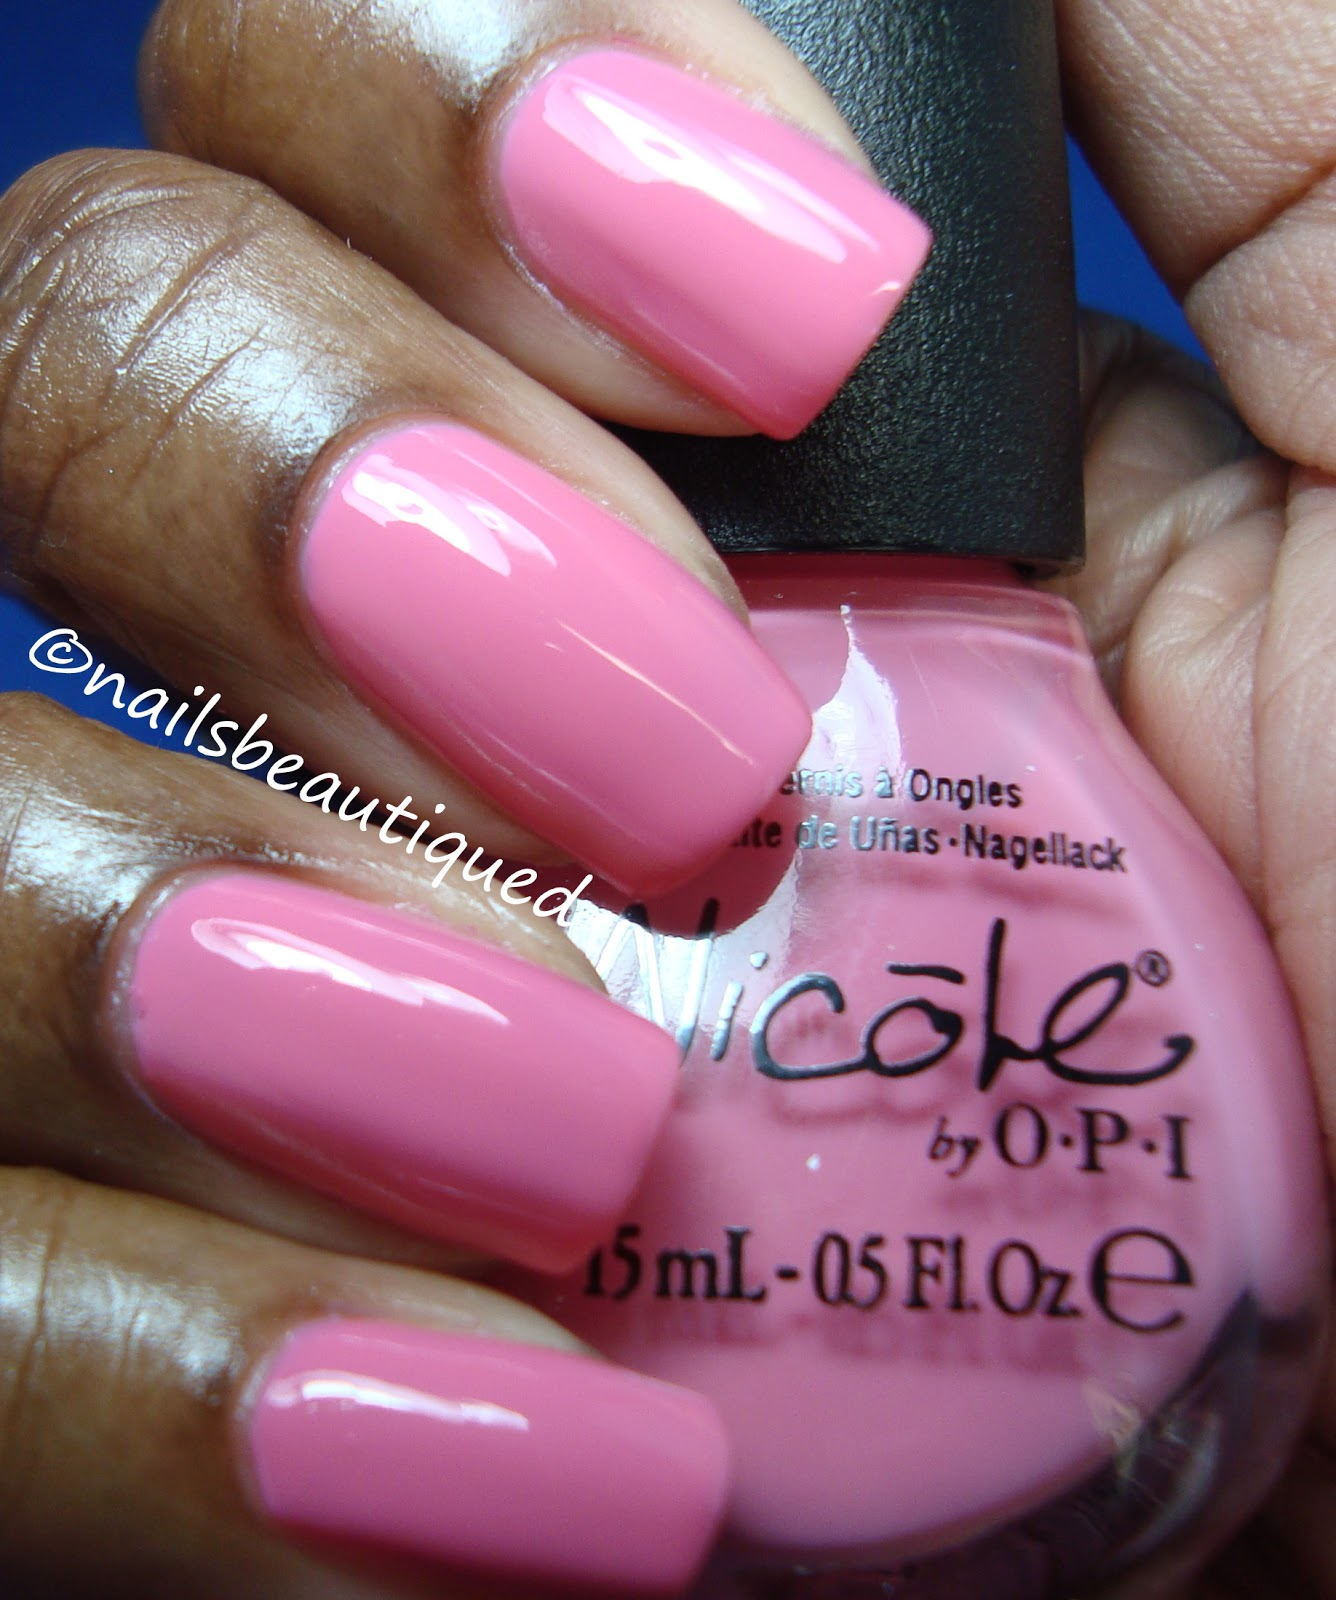 unbitten polish: Nicole By OPI Exclusively At CVS, Swatches and Review